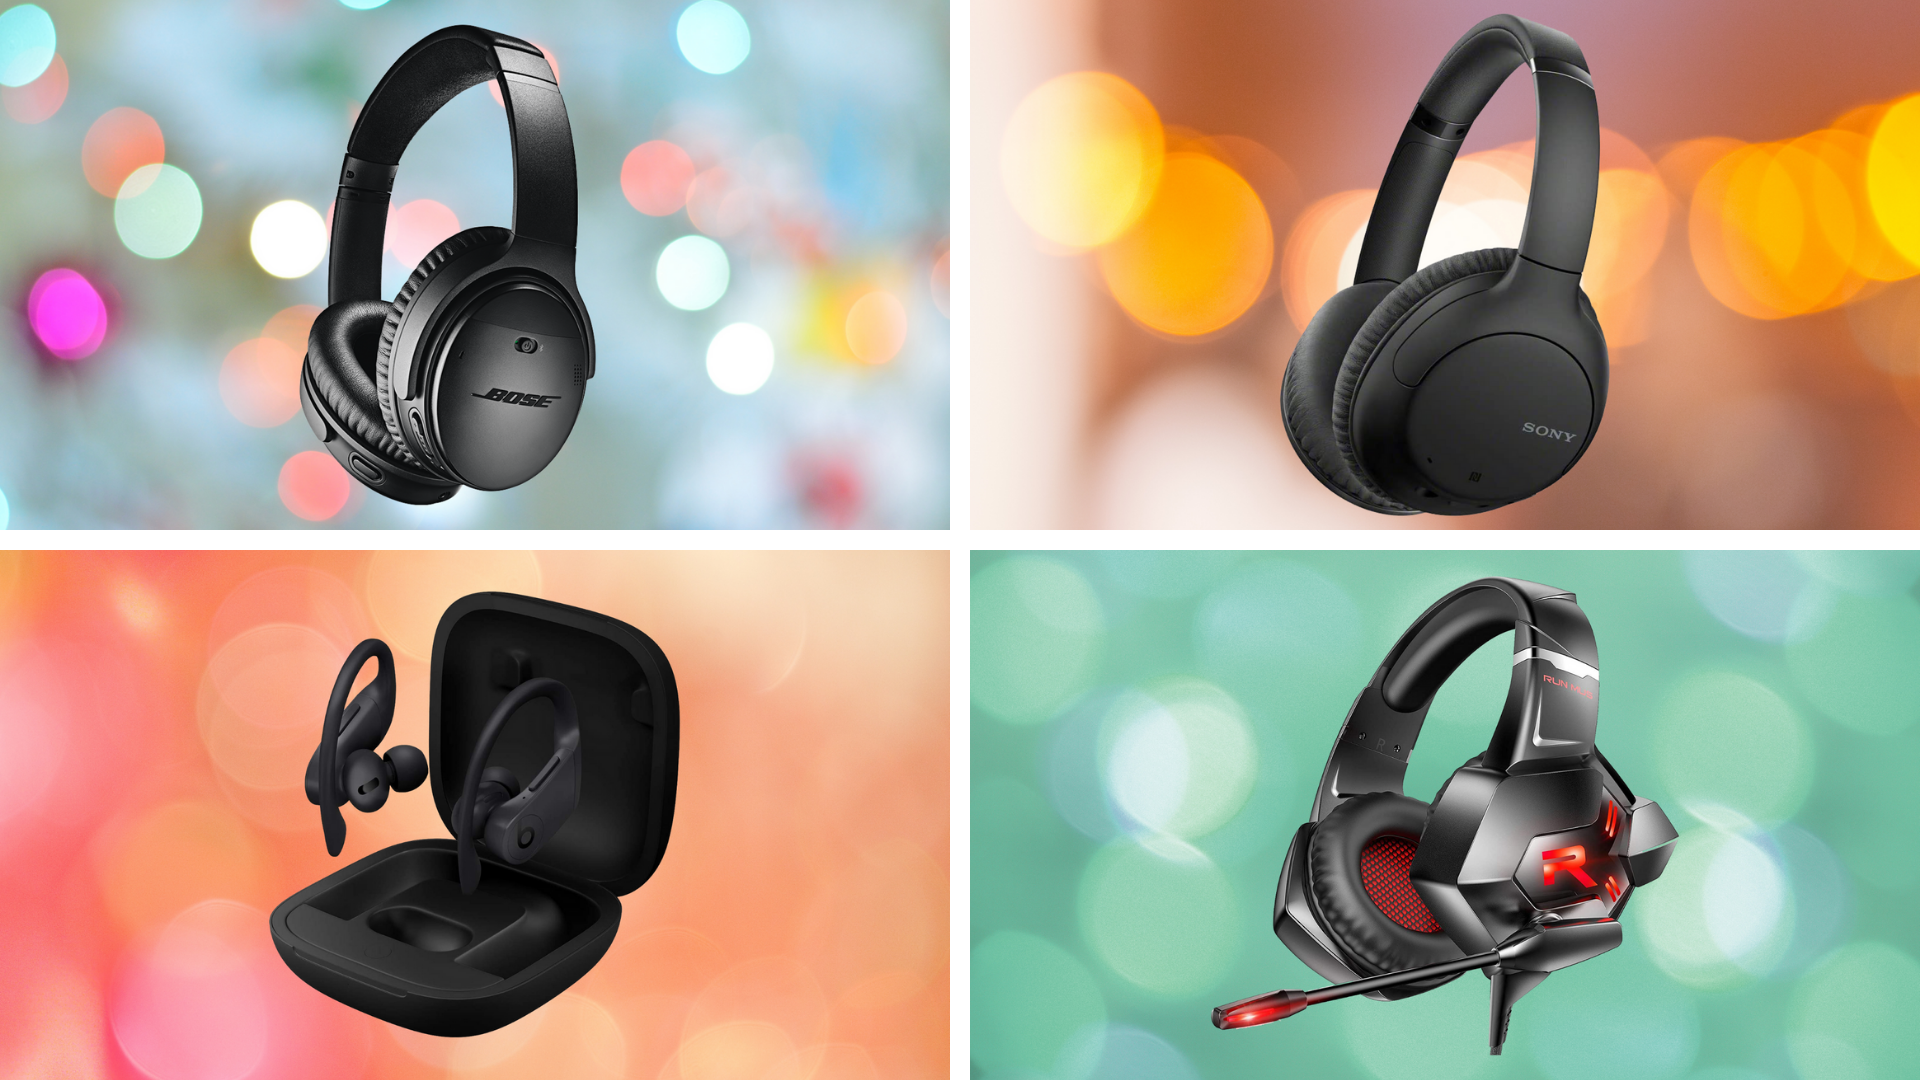 The best headphones deals on Amazon are still going strong—from Bose to Sony